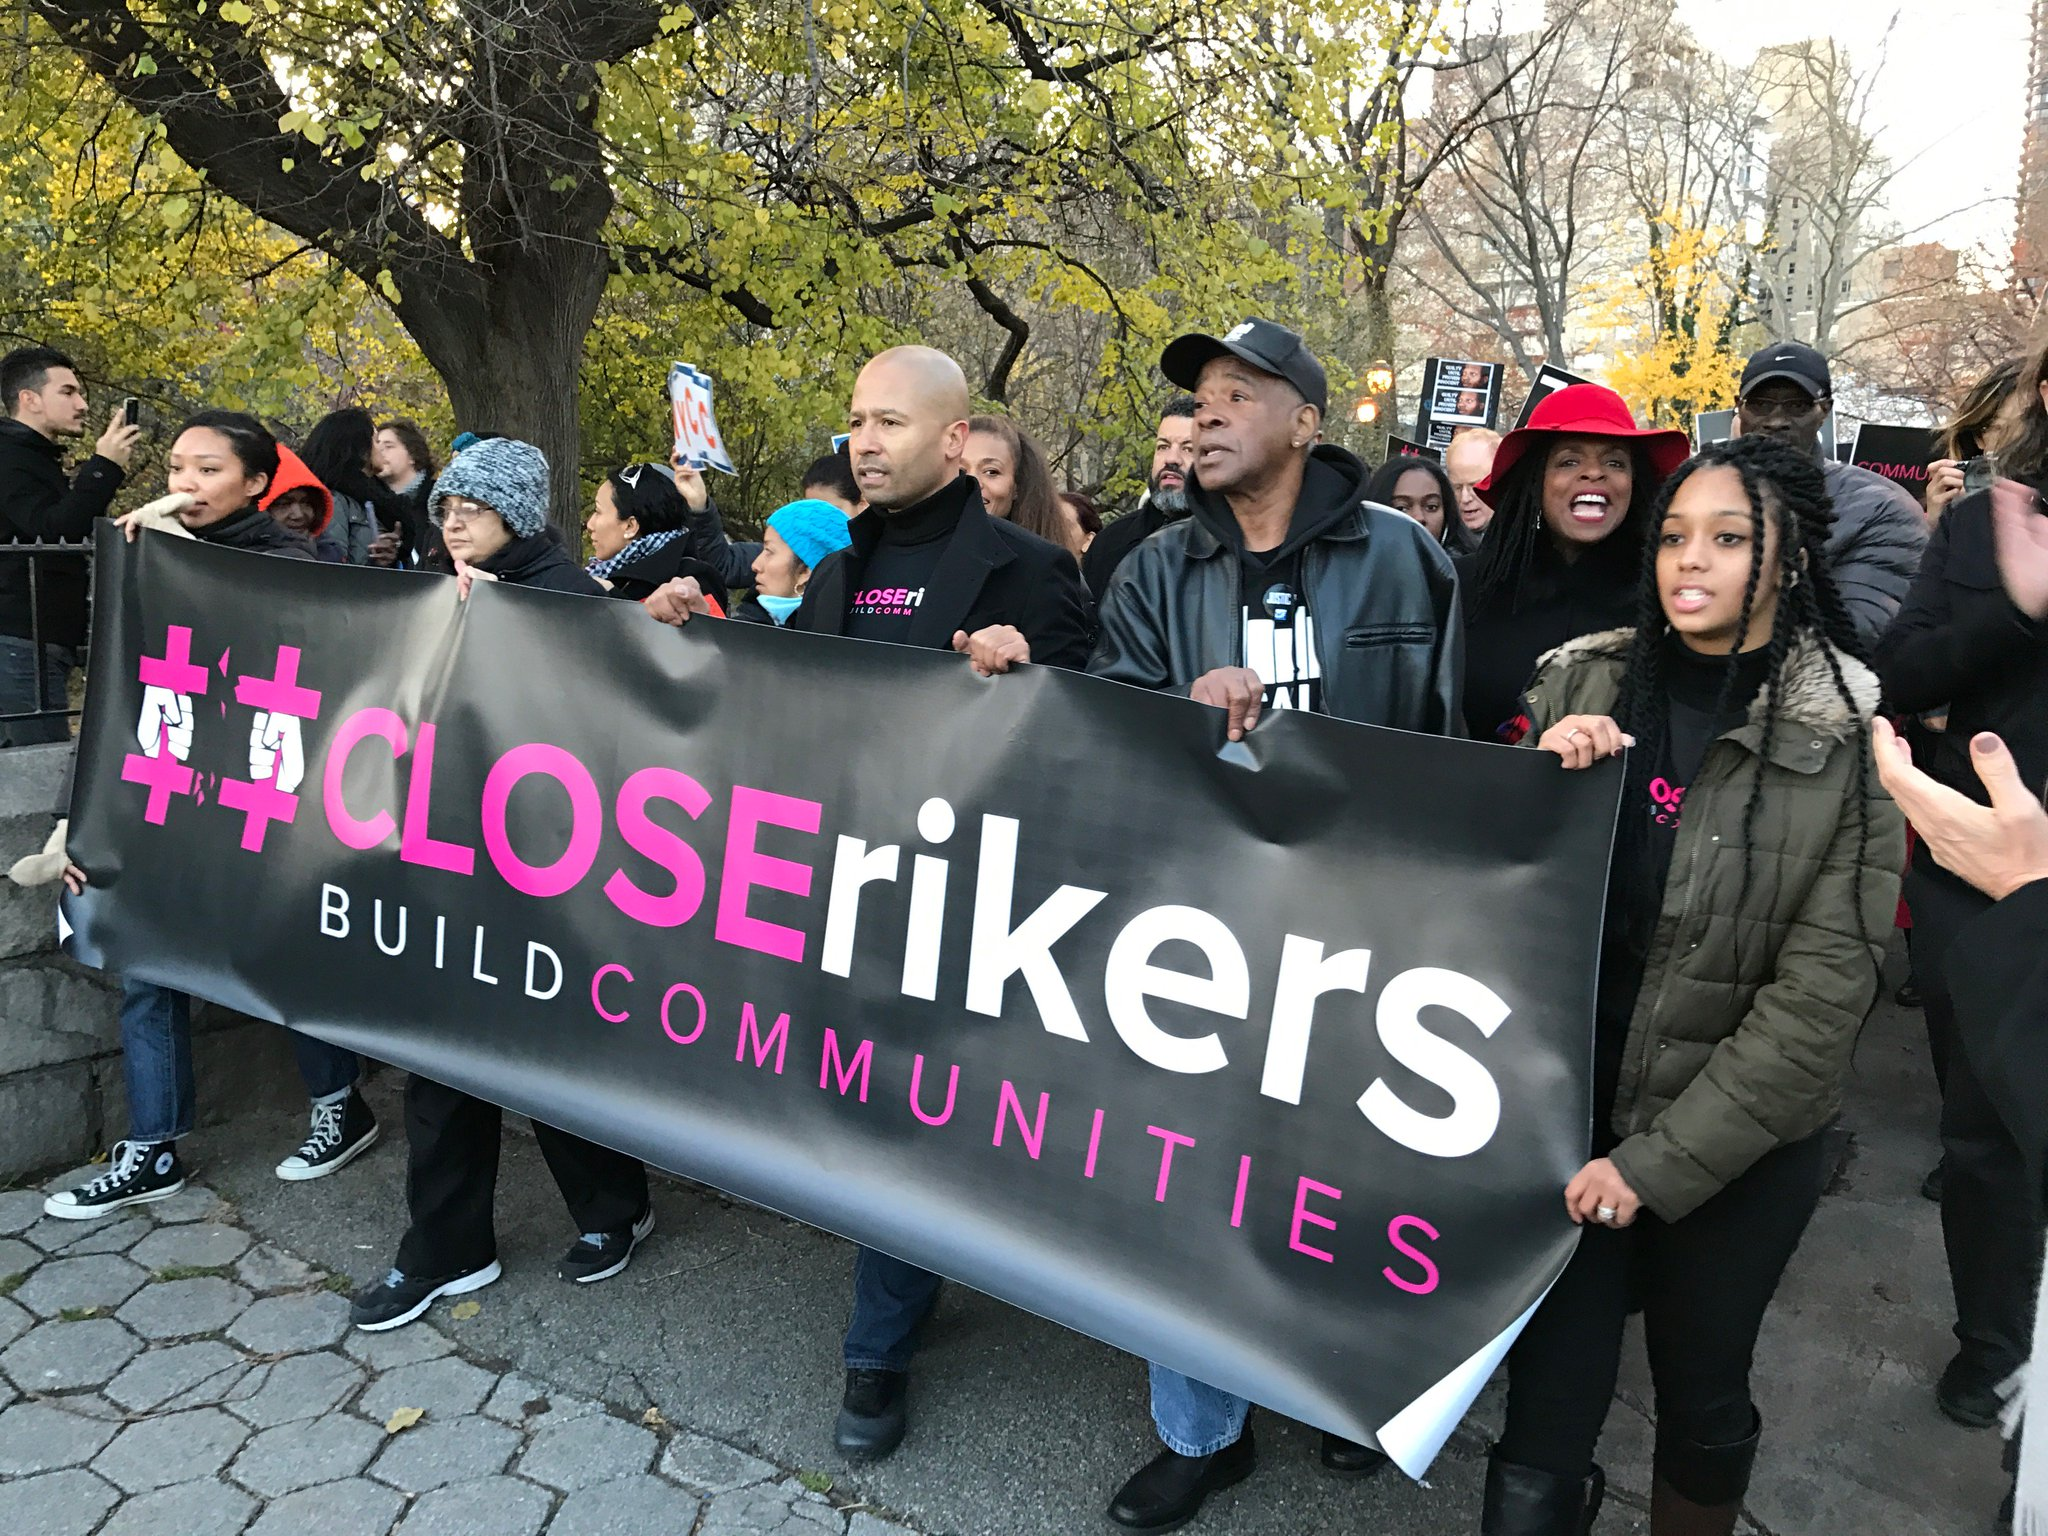 @angiemartinez A3. Today leaders of all faiths & backgrounds, many formerly incarcerated, to demanded we #CLOSErikers. It takes all of us. https://t.co/KkOTvLViVI